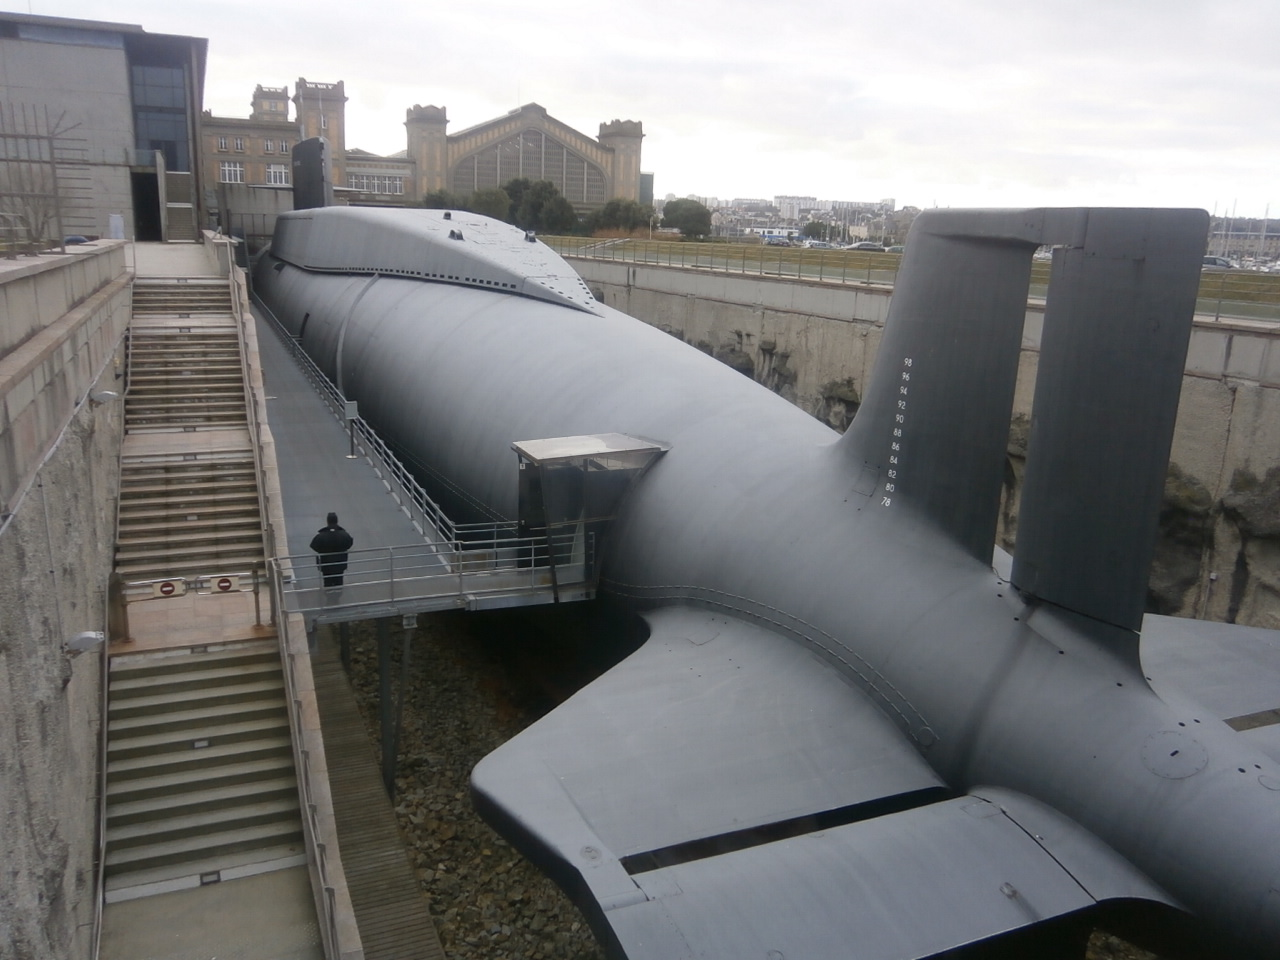 Sous-marin le Redoutable, Cherbourg